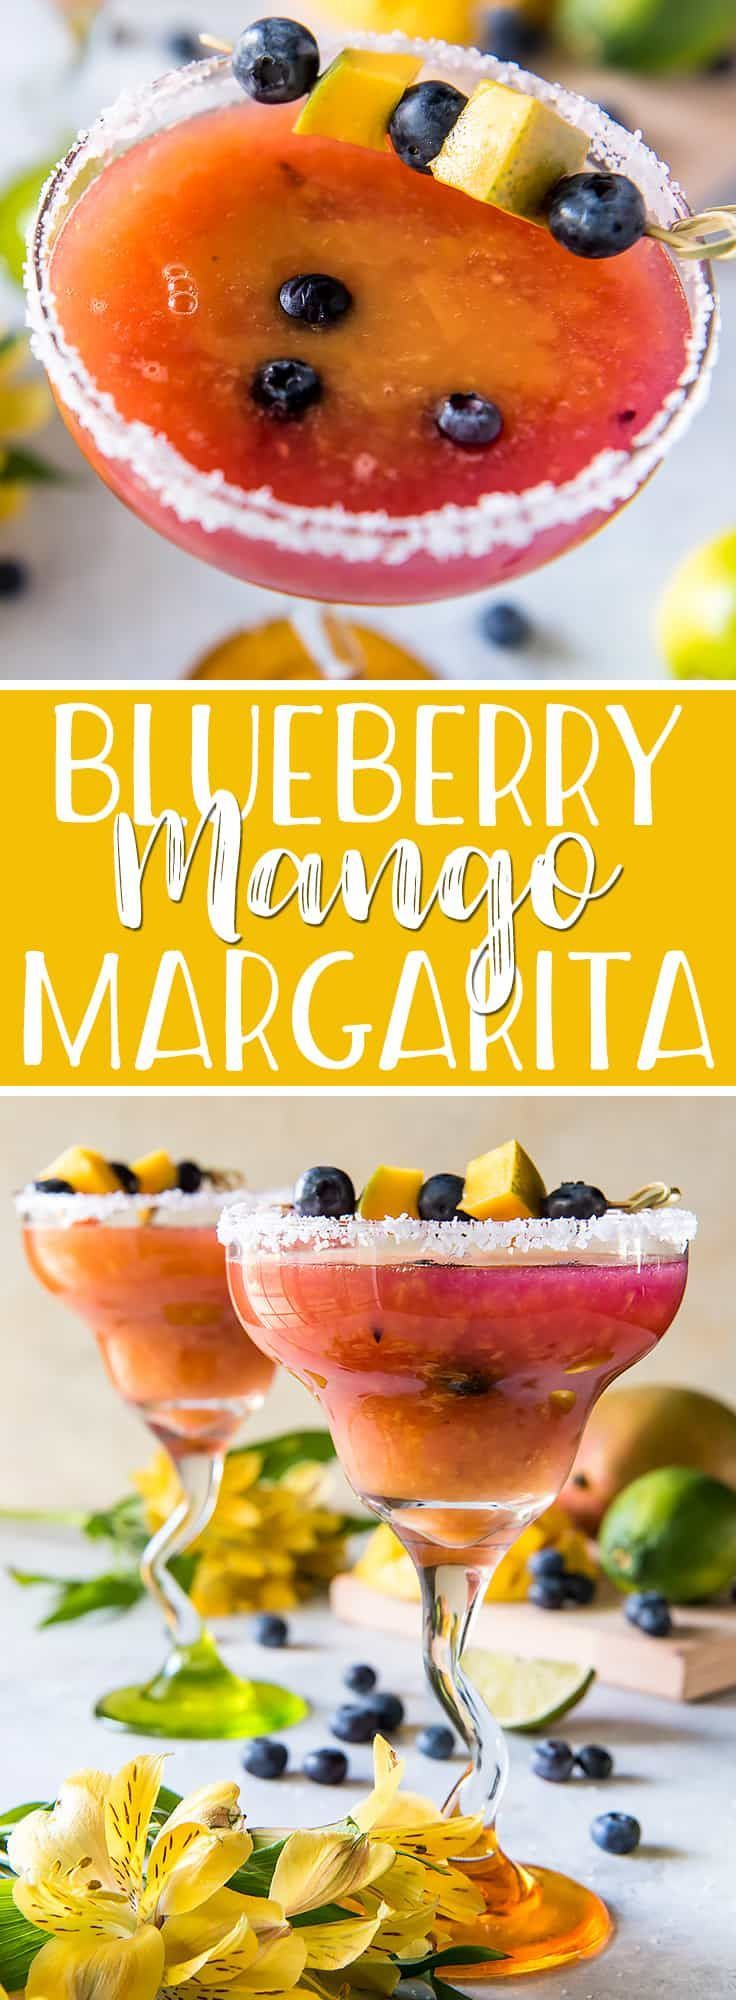 You don't need a special occasion to enjoy the best Blueberry Mango Margarita you've ever had! Muddled blueberries, lime, tequila, and simple syrup come together with an orange-mango puree in a deliciously colorful cocktail you can (and should!) drink all year long.